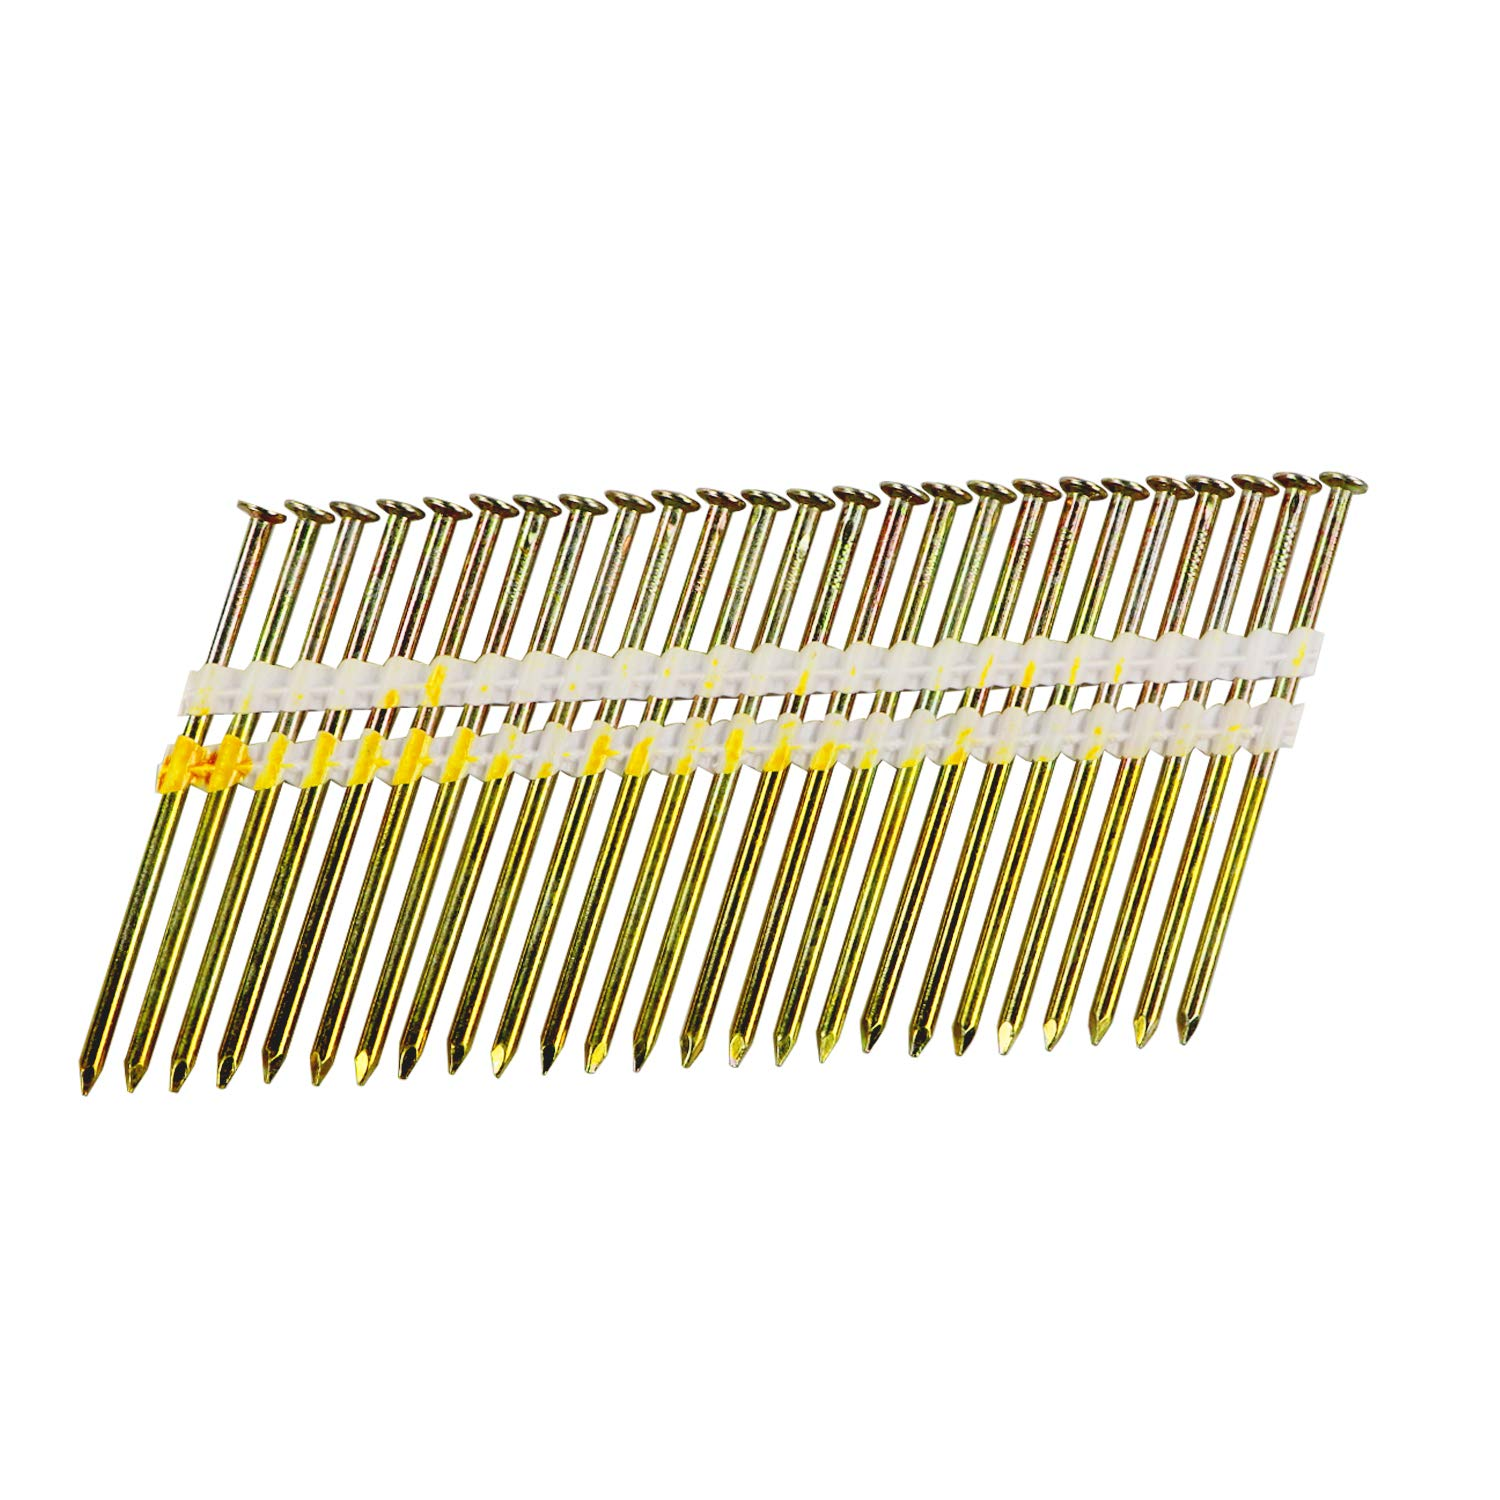 BHTOP 3 Inch Framing Nails, 21 Degree Bright Smooth Shank Plastic Collated Nails for Framing Nailer, 3 x .131,(1000 per Box) by BHTOP